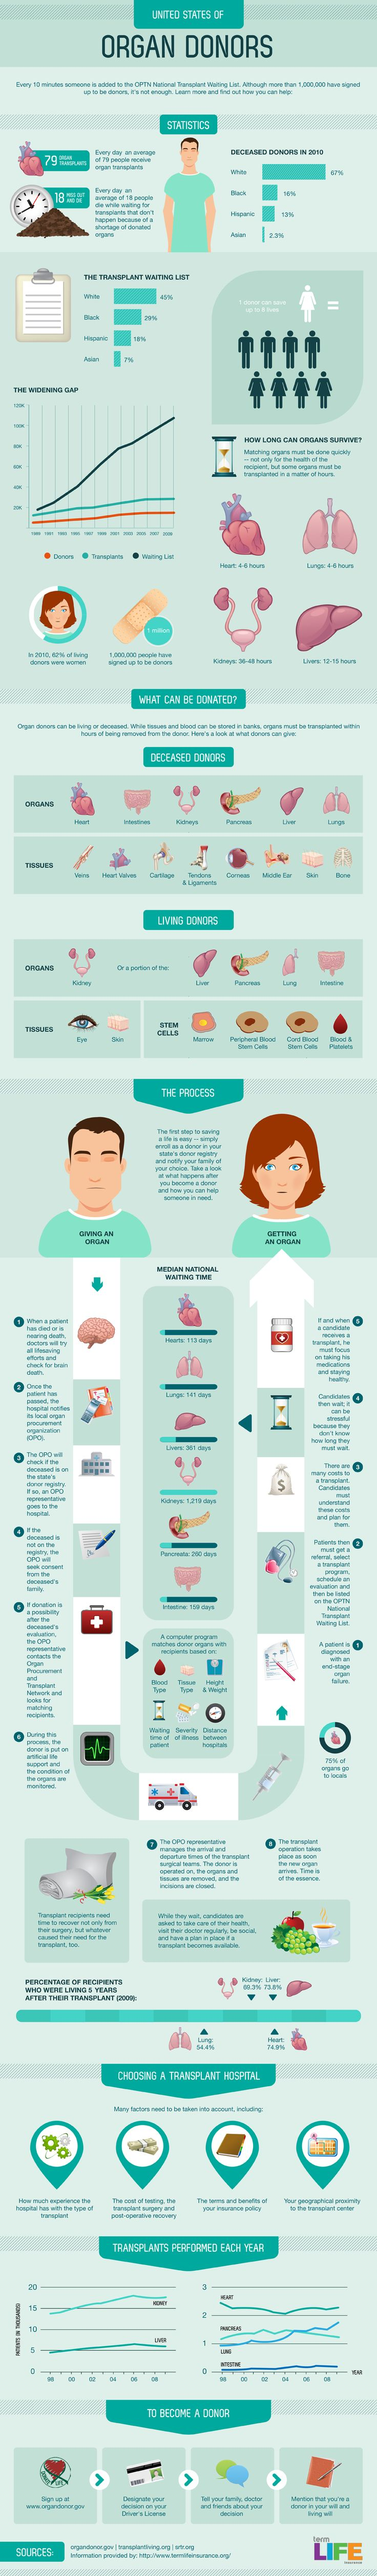 Infographic on Organ Donation Process - #Health